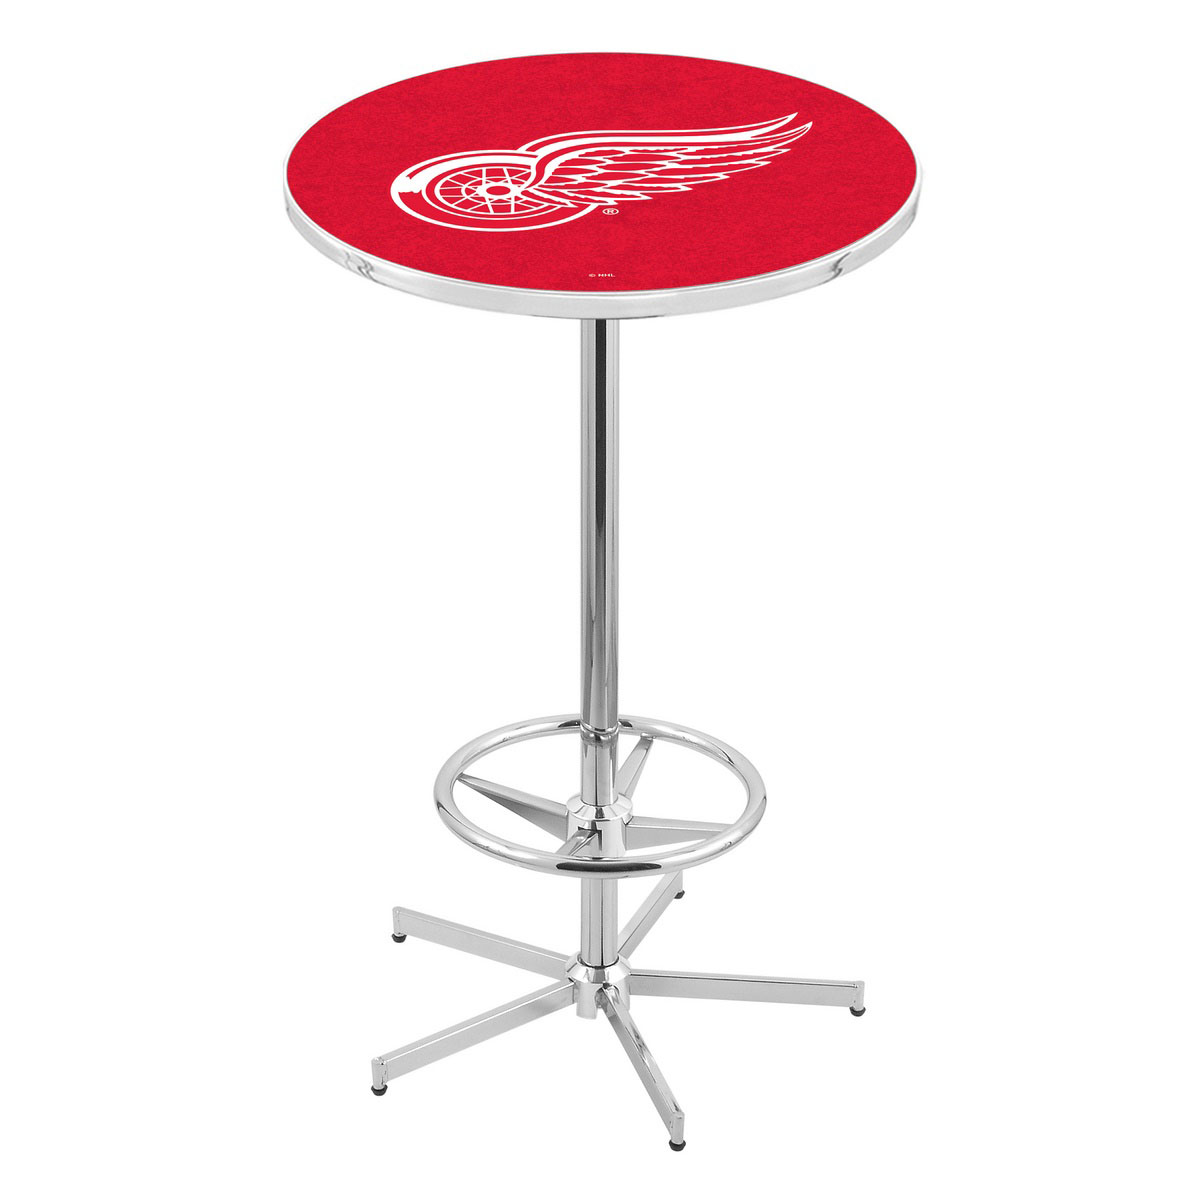 Remarkable Chrome Detroit Wings Pub Table Product Photo